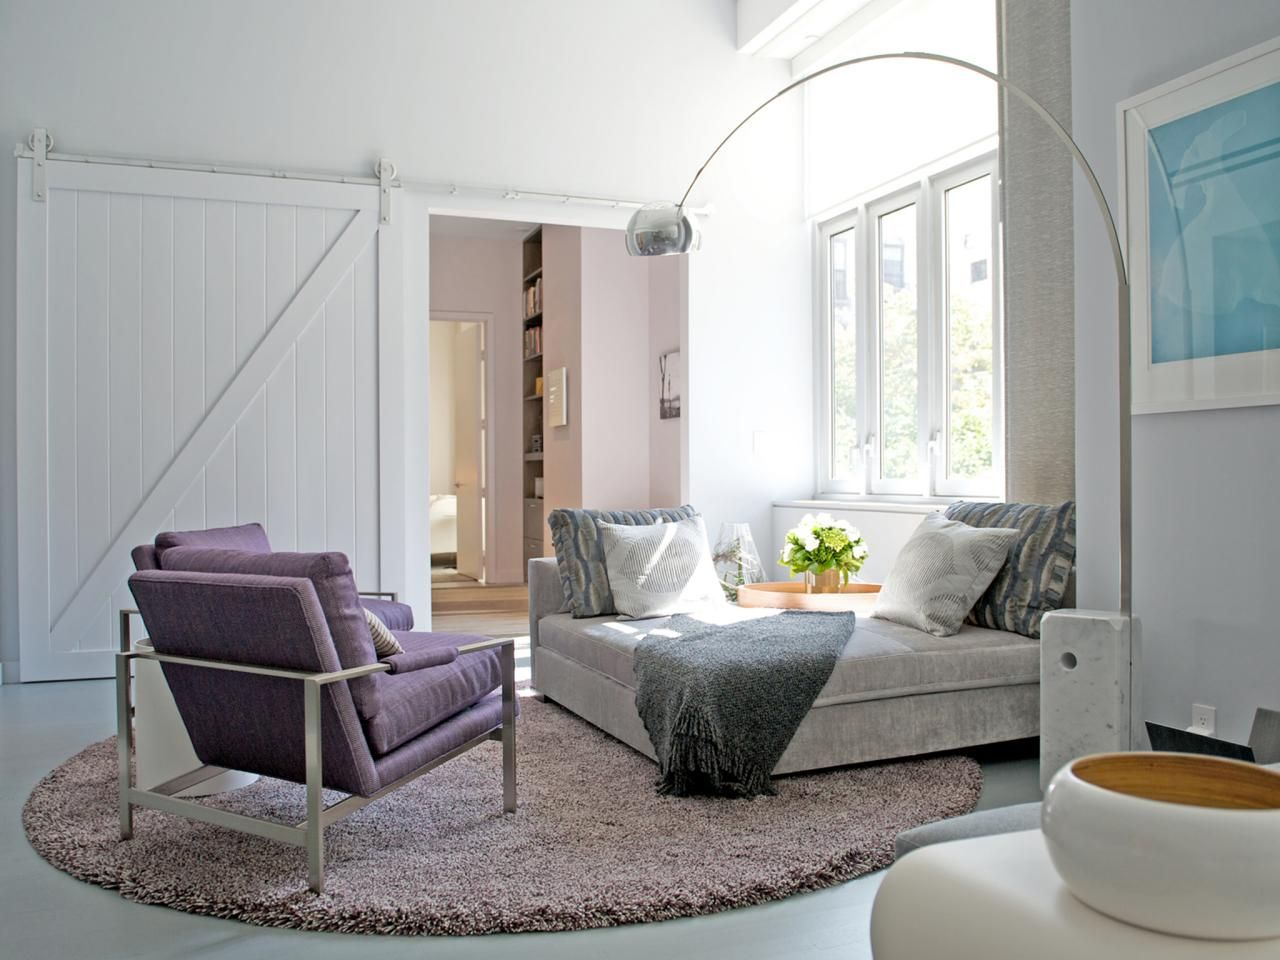 Make Space With Clever Room Dividers   Openness, Lounge areas and ...